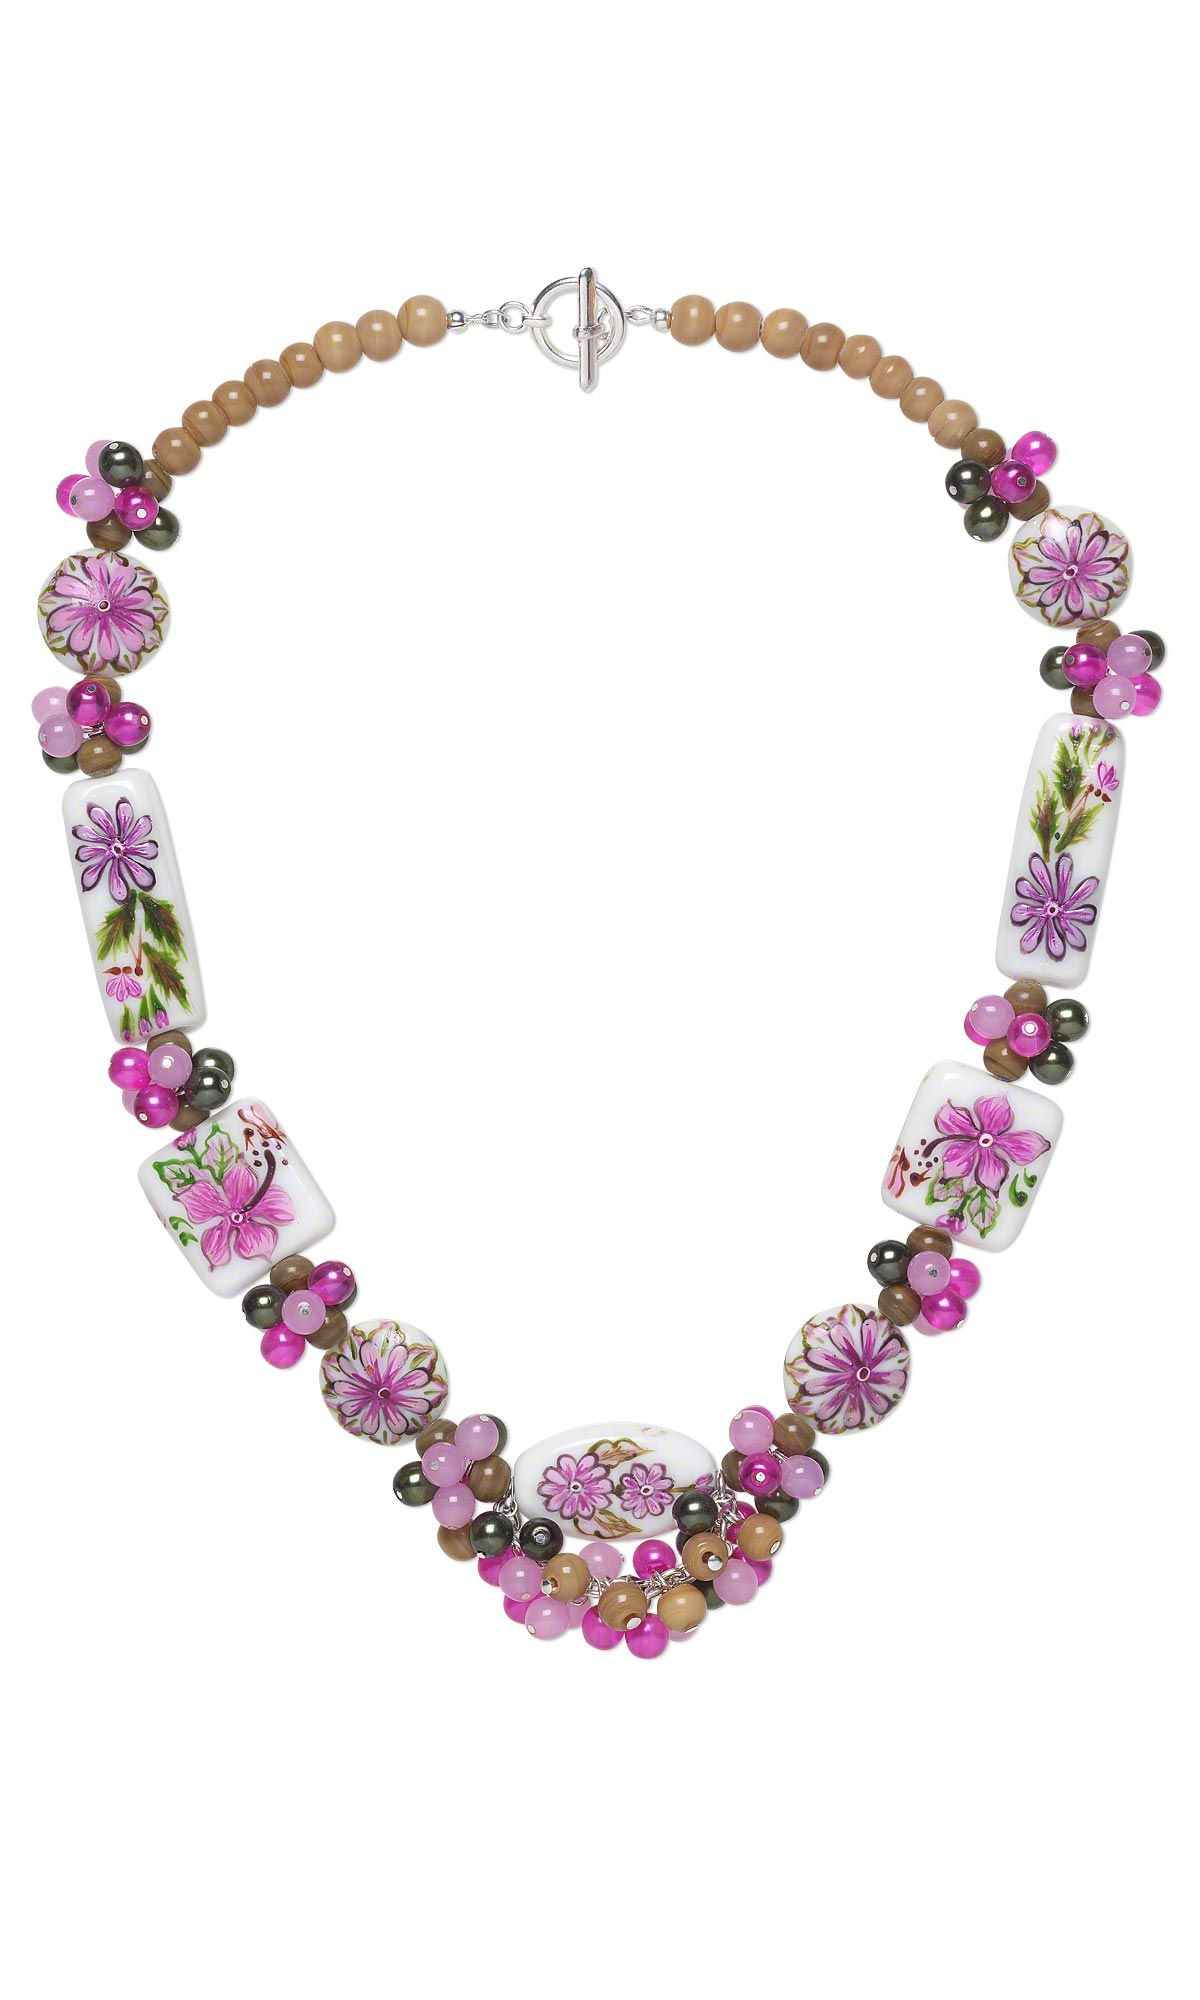 jewelry design single strand necklace with czech glass beads and